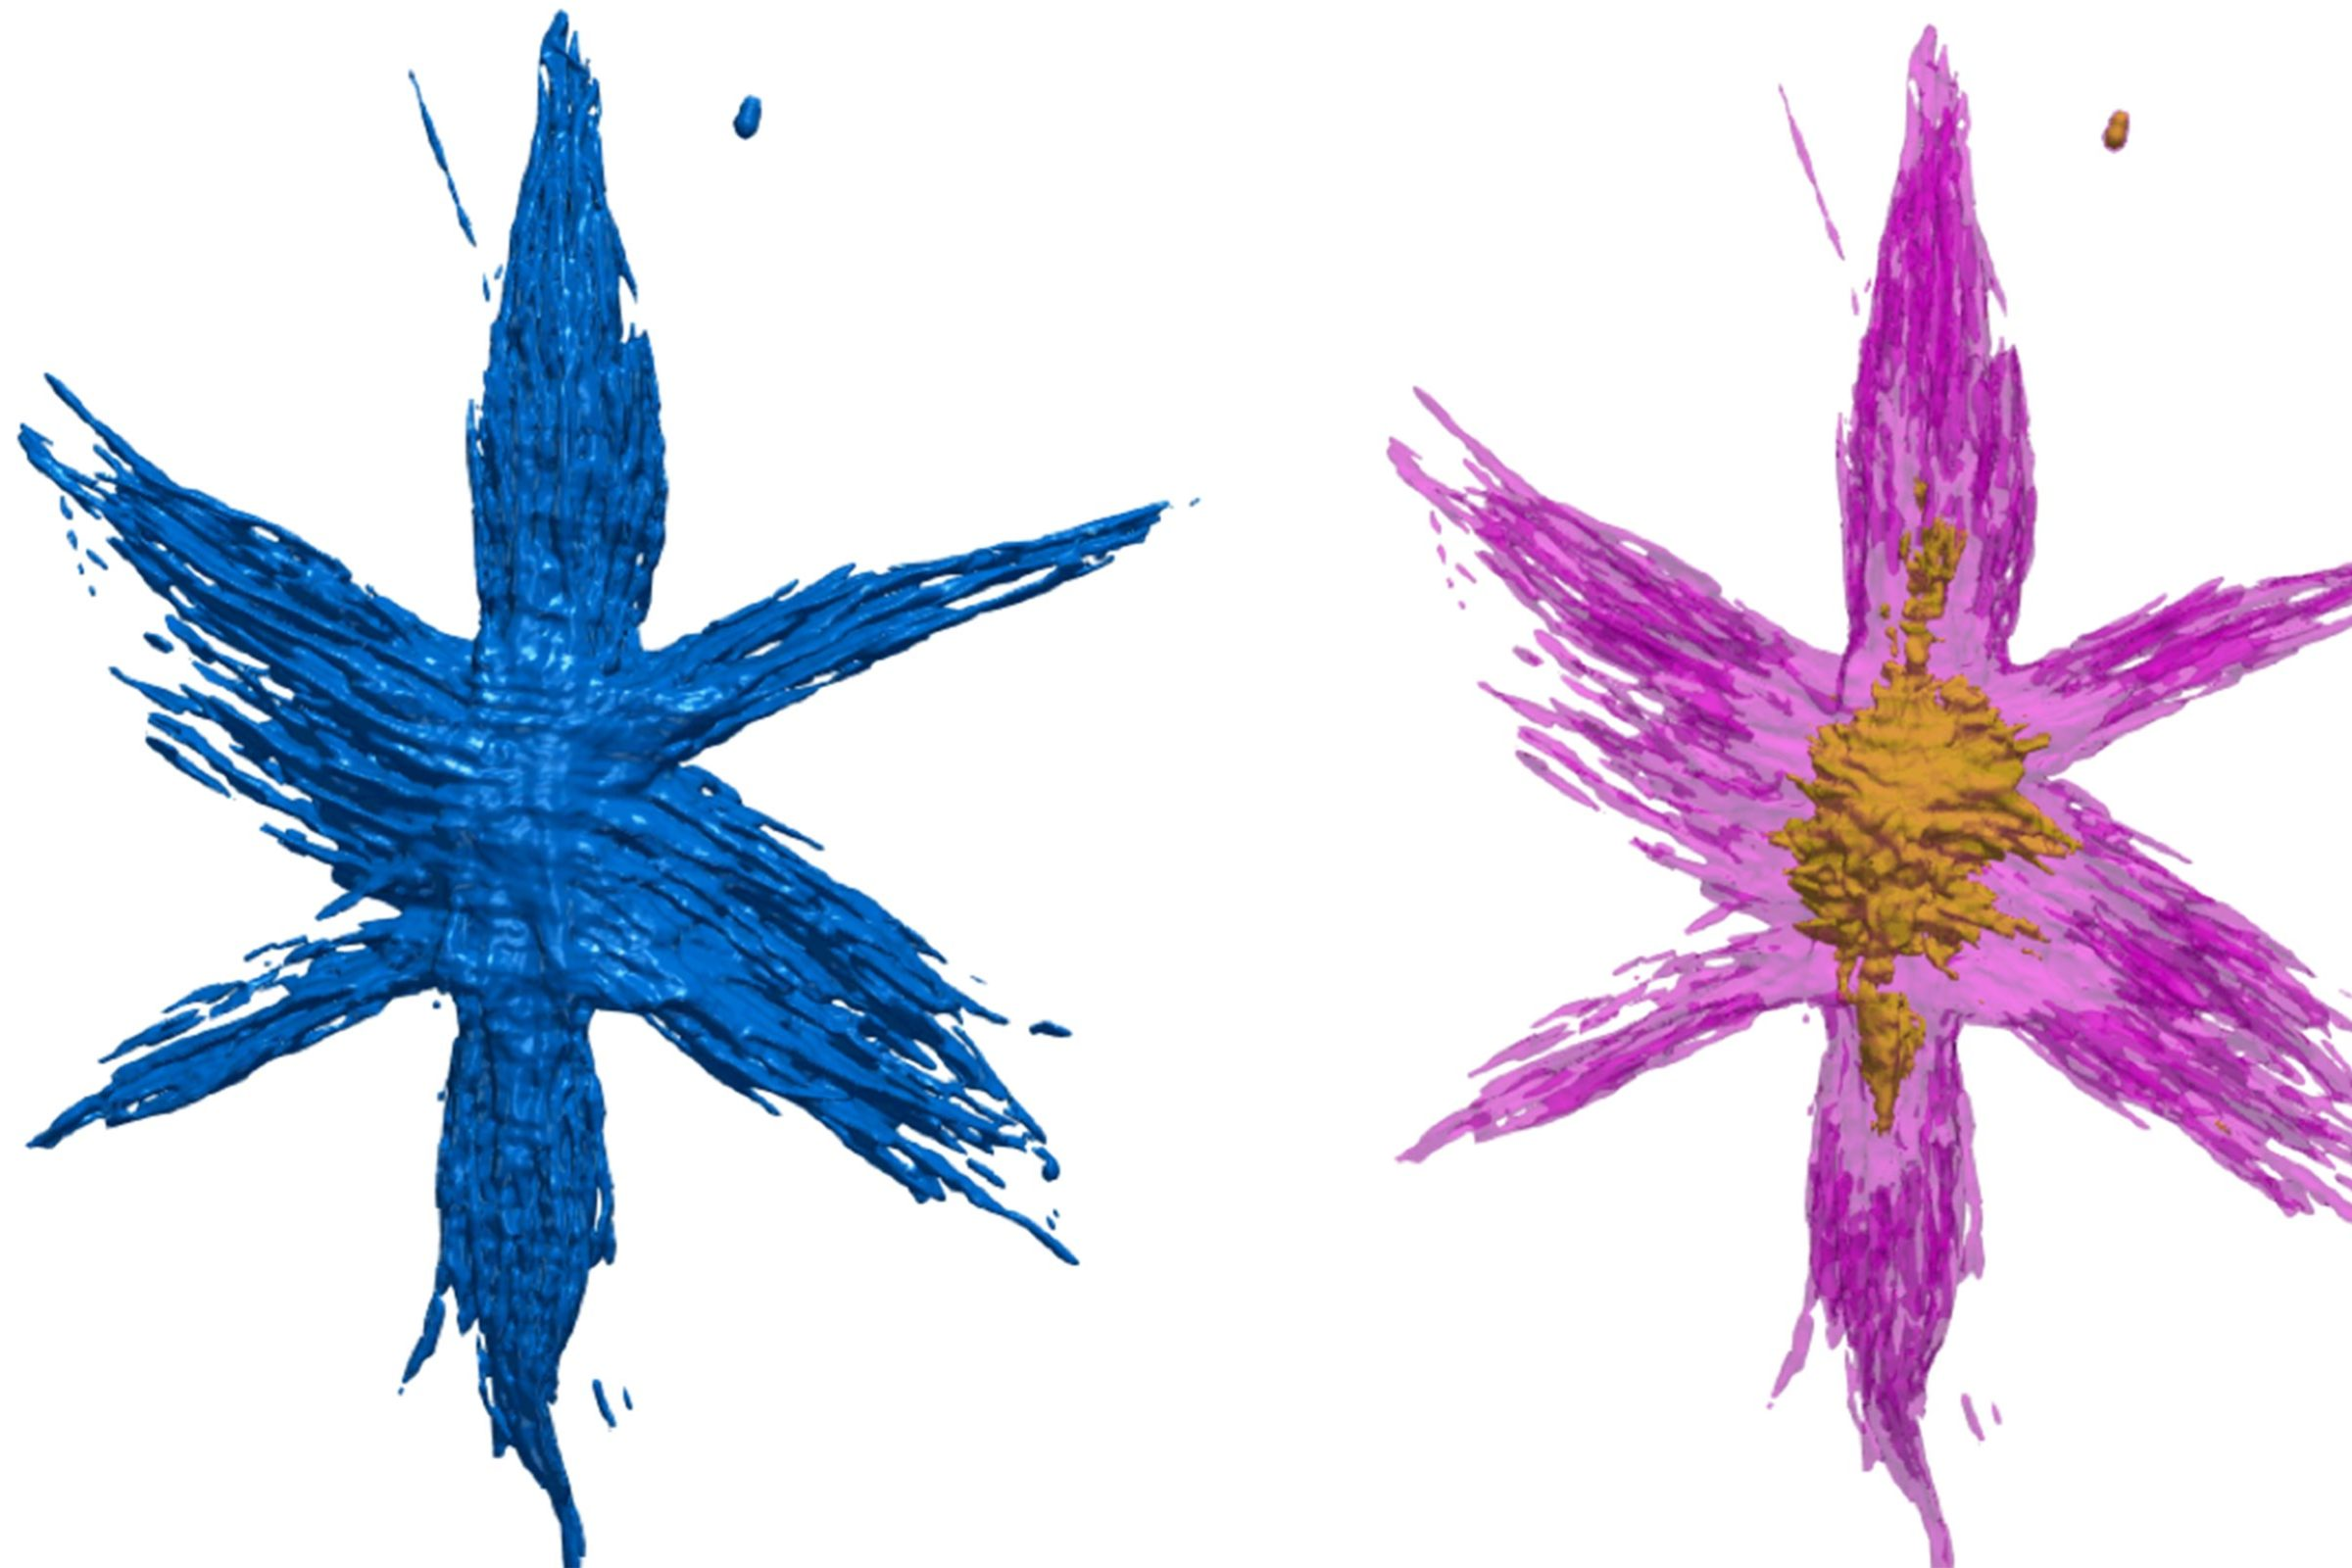 This image from Tomviz 1.0 depicts a hyperbranched particle with complex nanostructure.